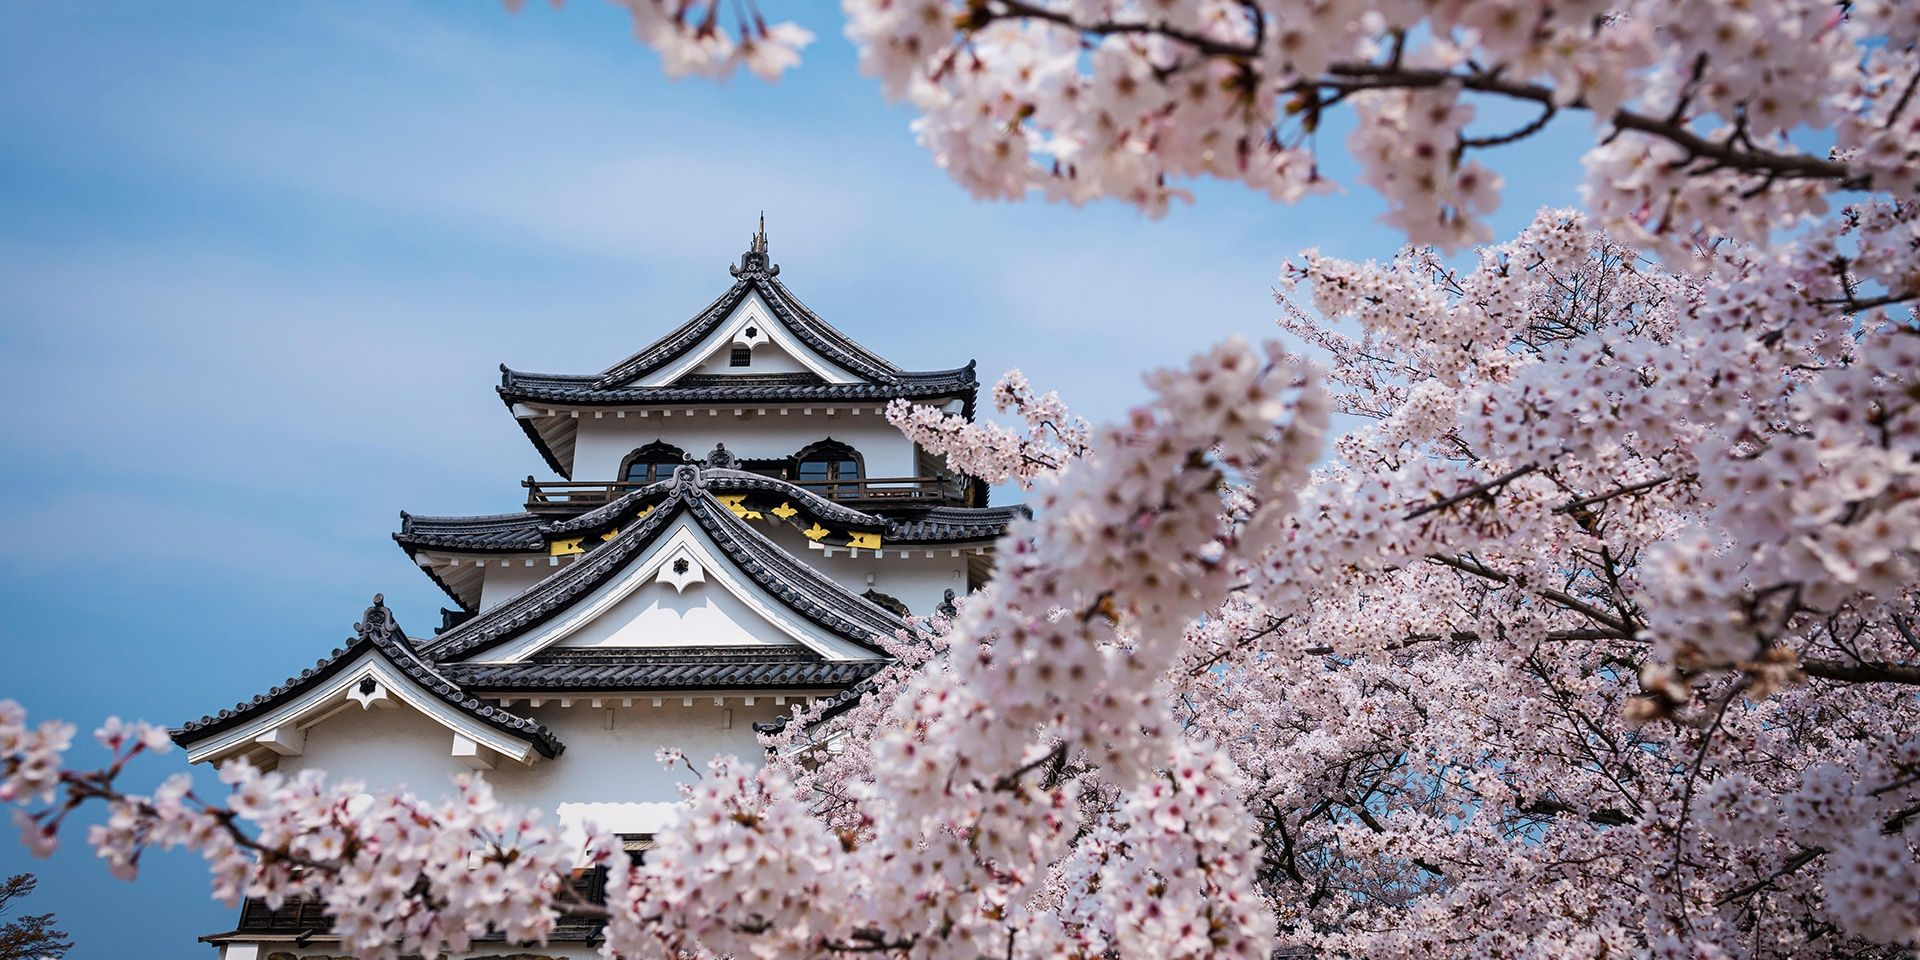 When Do Cherry Blossoms Bloom In Japan Marriott Traveler Tokyo Imperial Palace Cherry Blossom Japan Imperial Palace